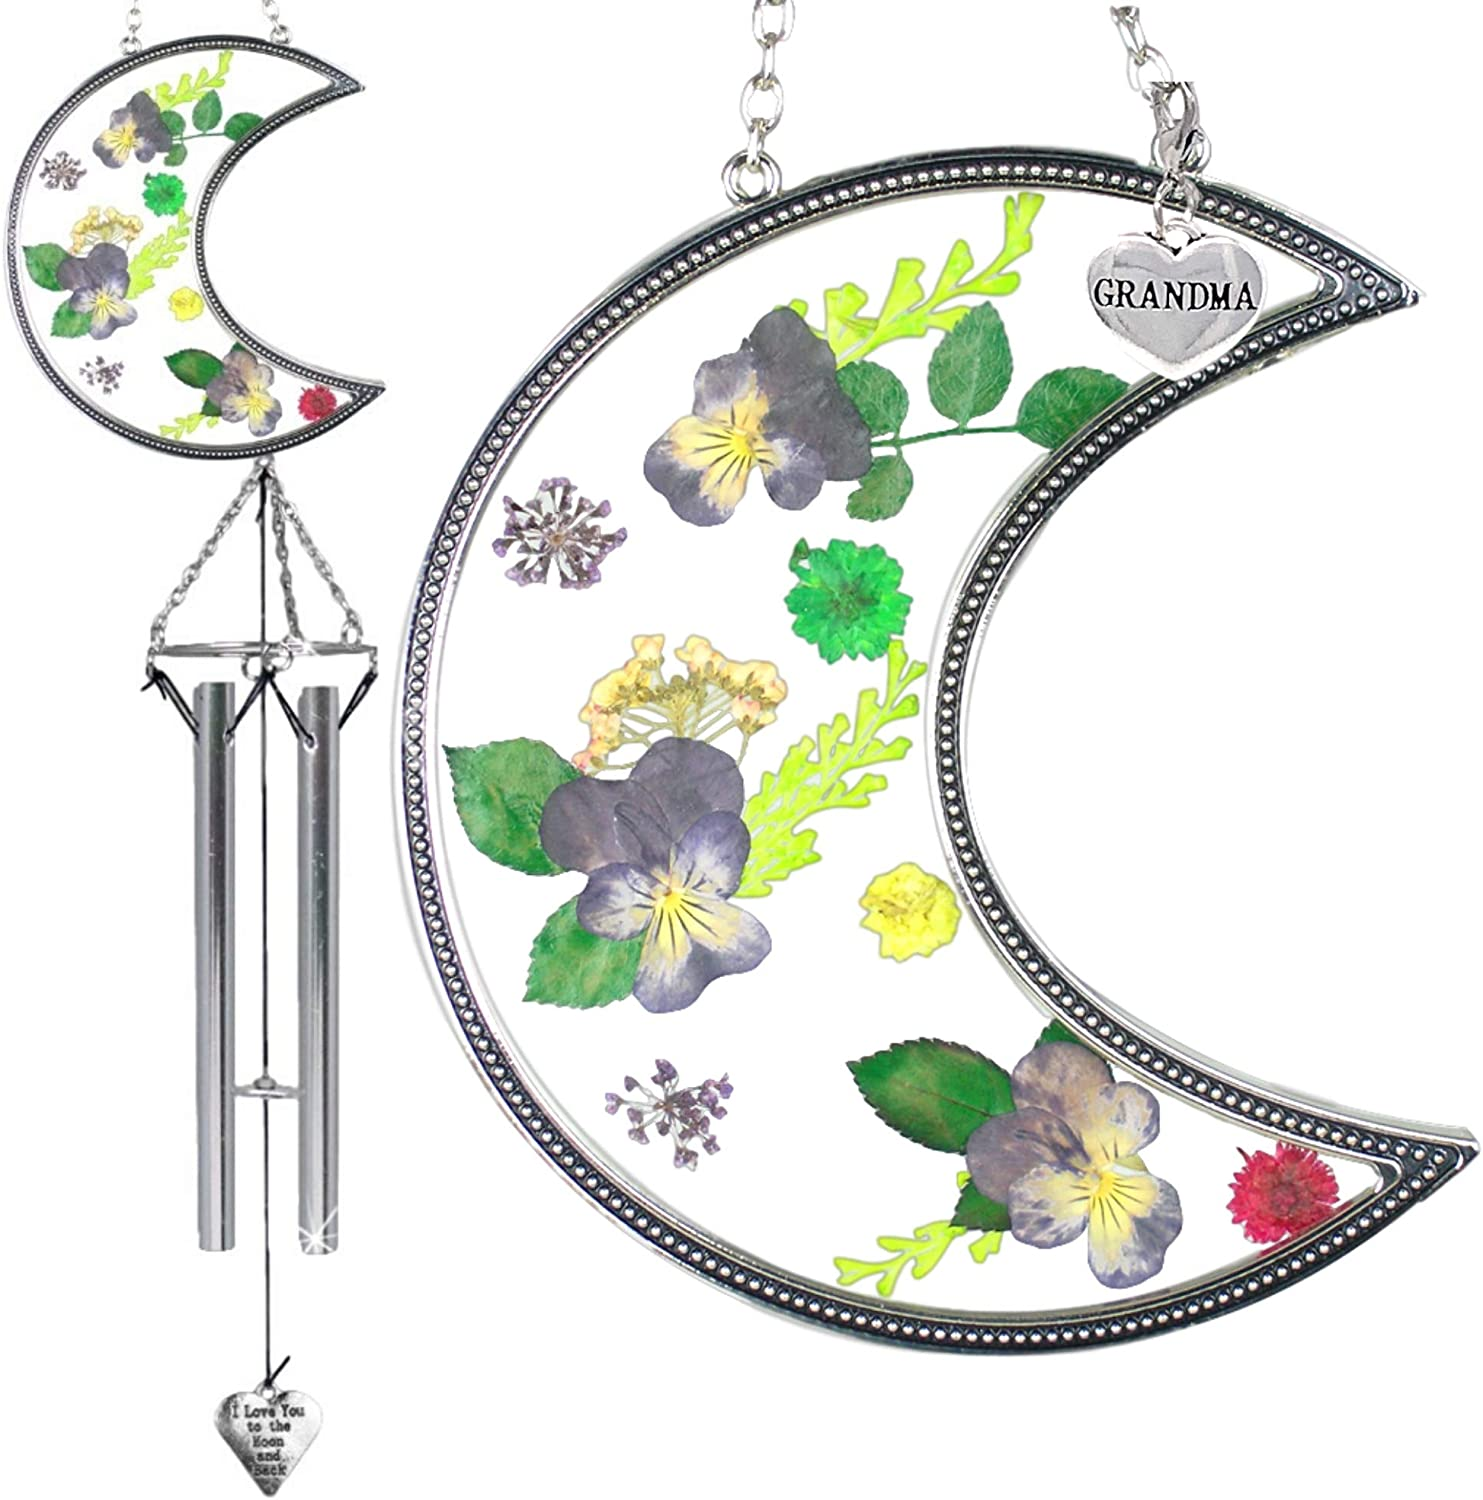 BANBERRY DESIGNS Grandma Wind Chime I Love You to The Moon and Back - Dried Pressed Flower Sun Catcher with Silver Grandma Charm - Garden Gifts for Mothers Day